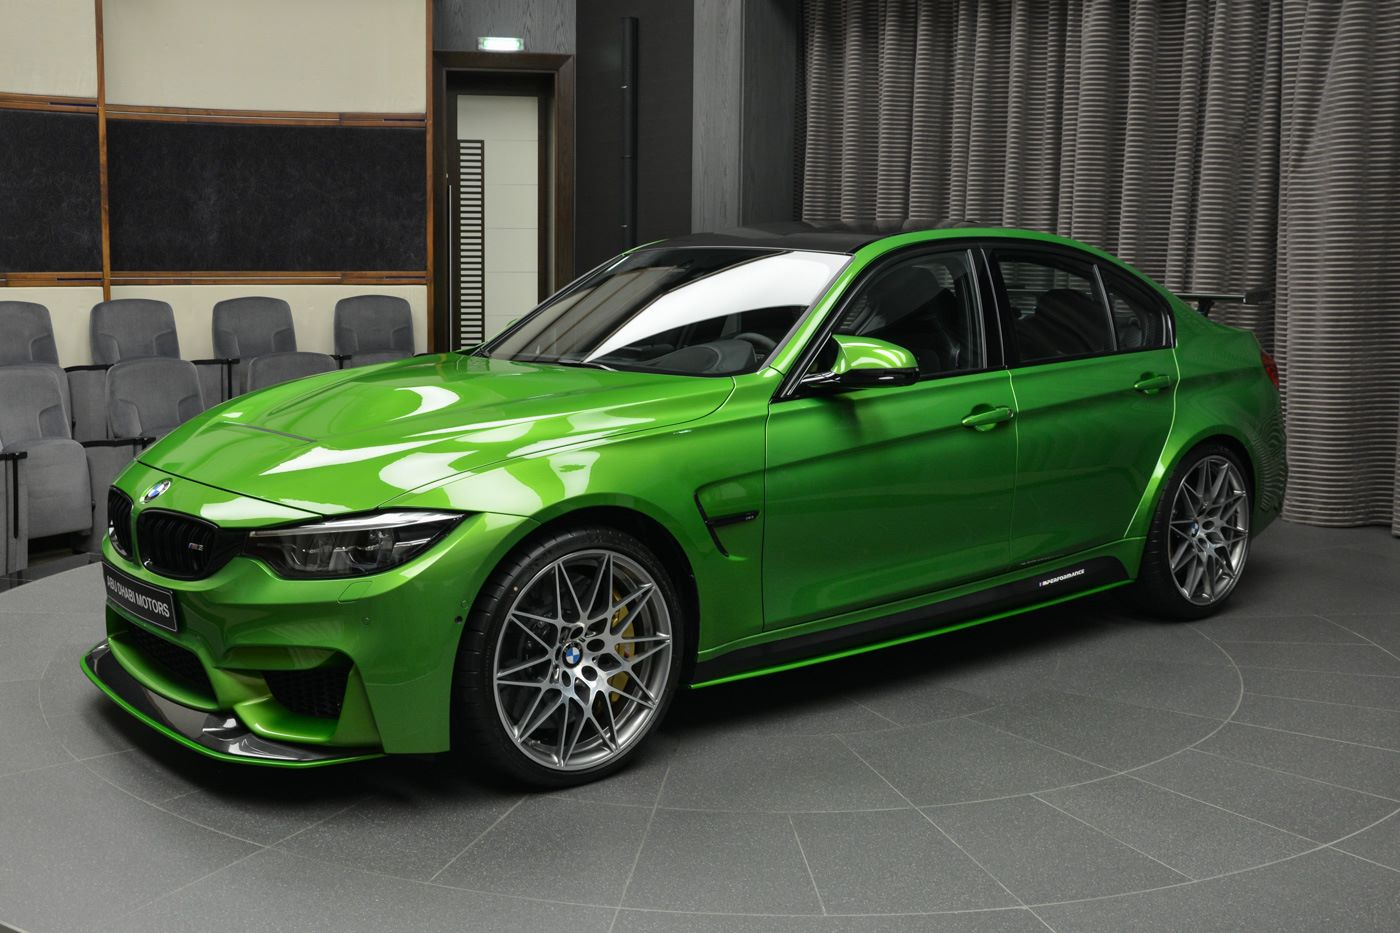 Java Green Bmw M3 With M Performance Parts Arrives In Abu